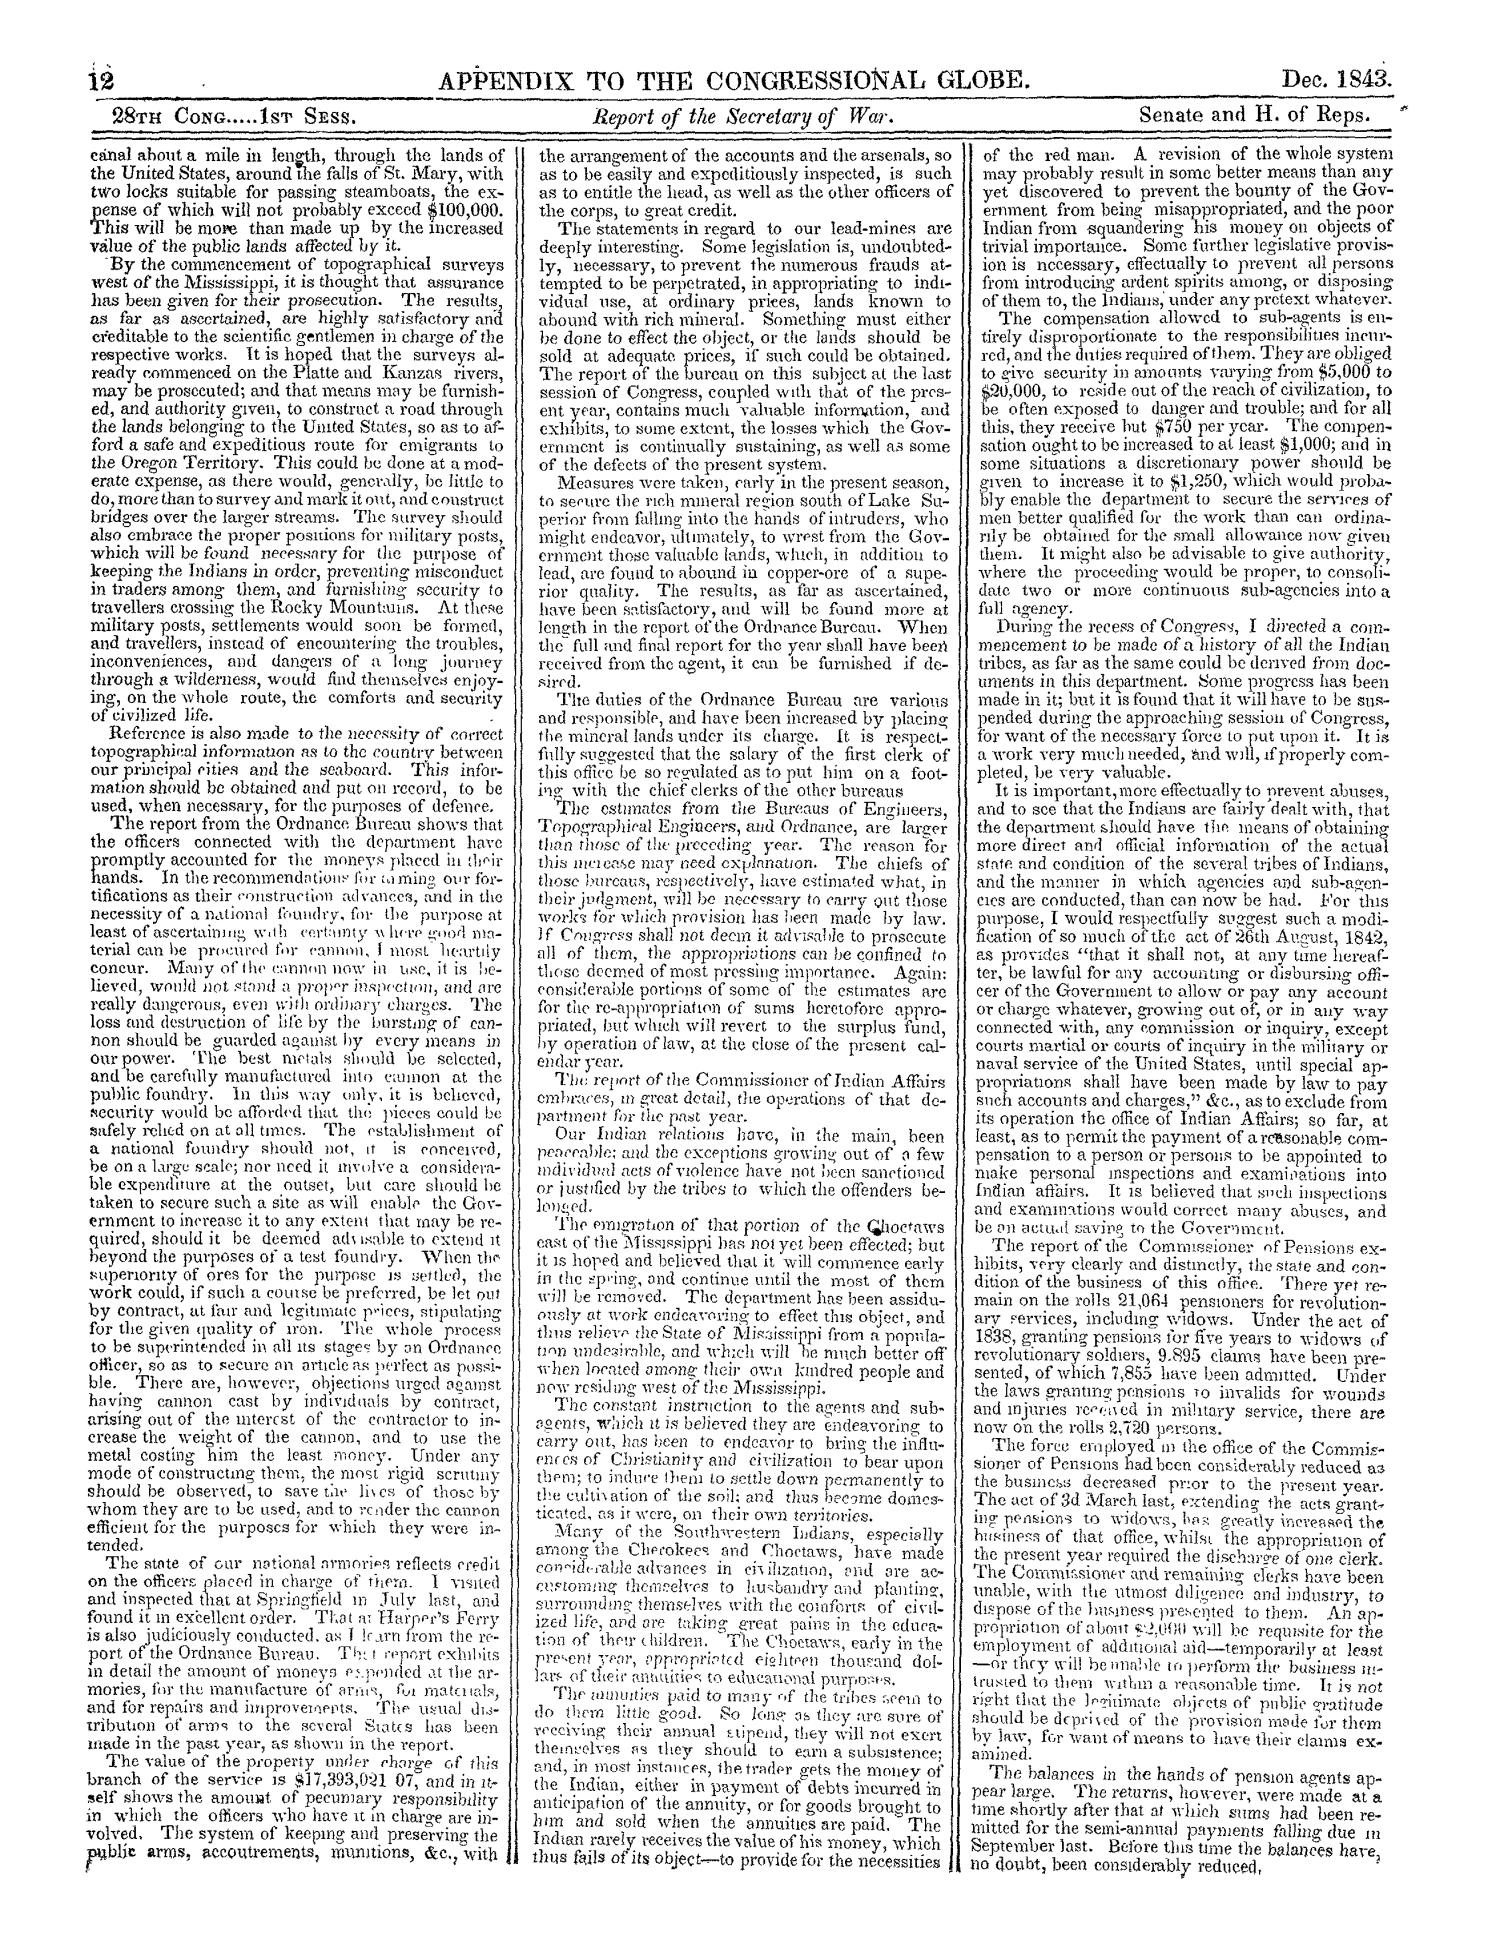 The Congressional Globe, Volume 13, Part 2: Twenty-Eighth Congress, First Session                                                                                                      12